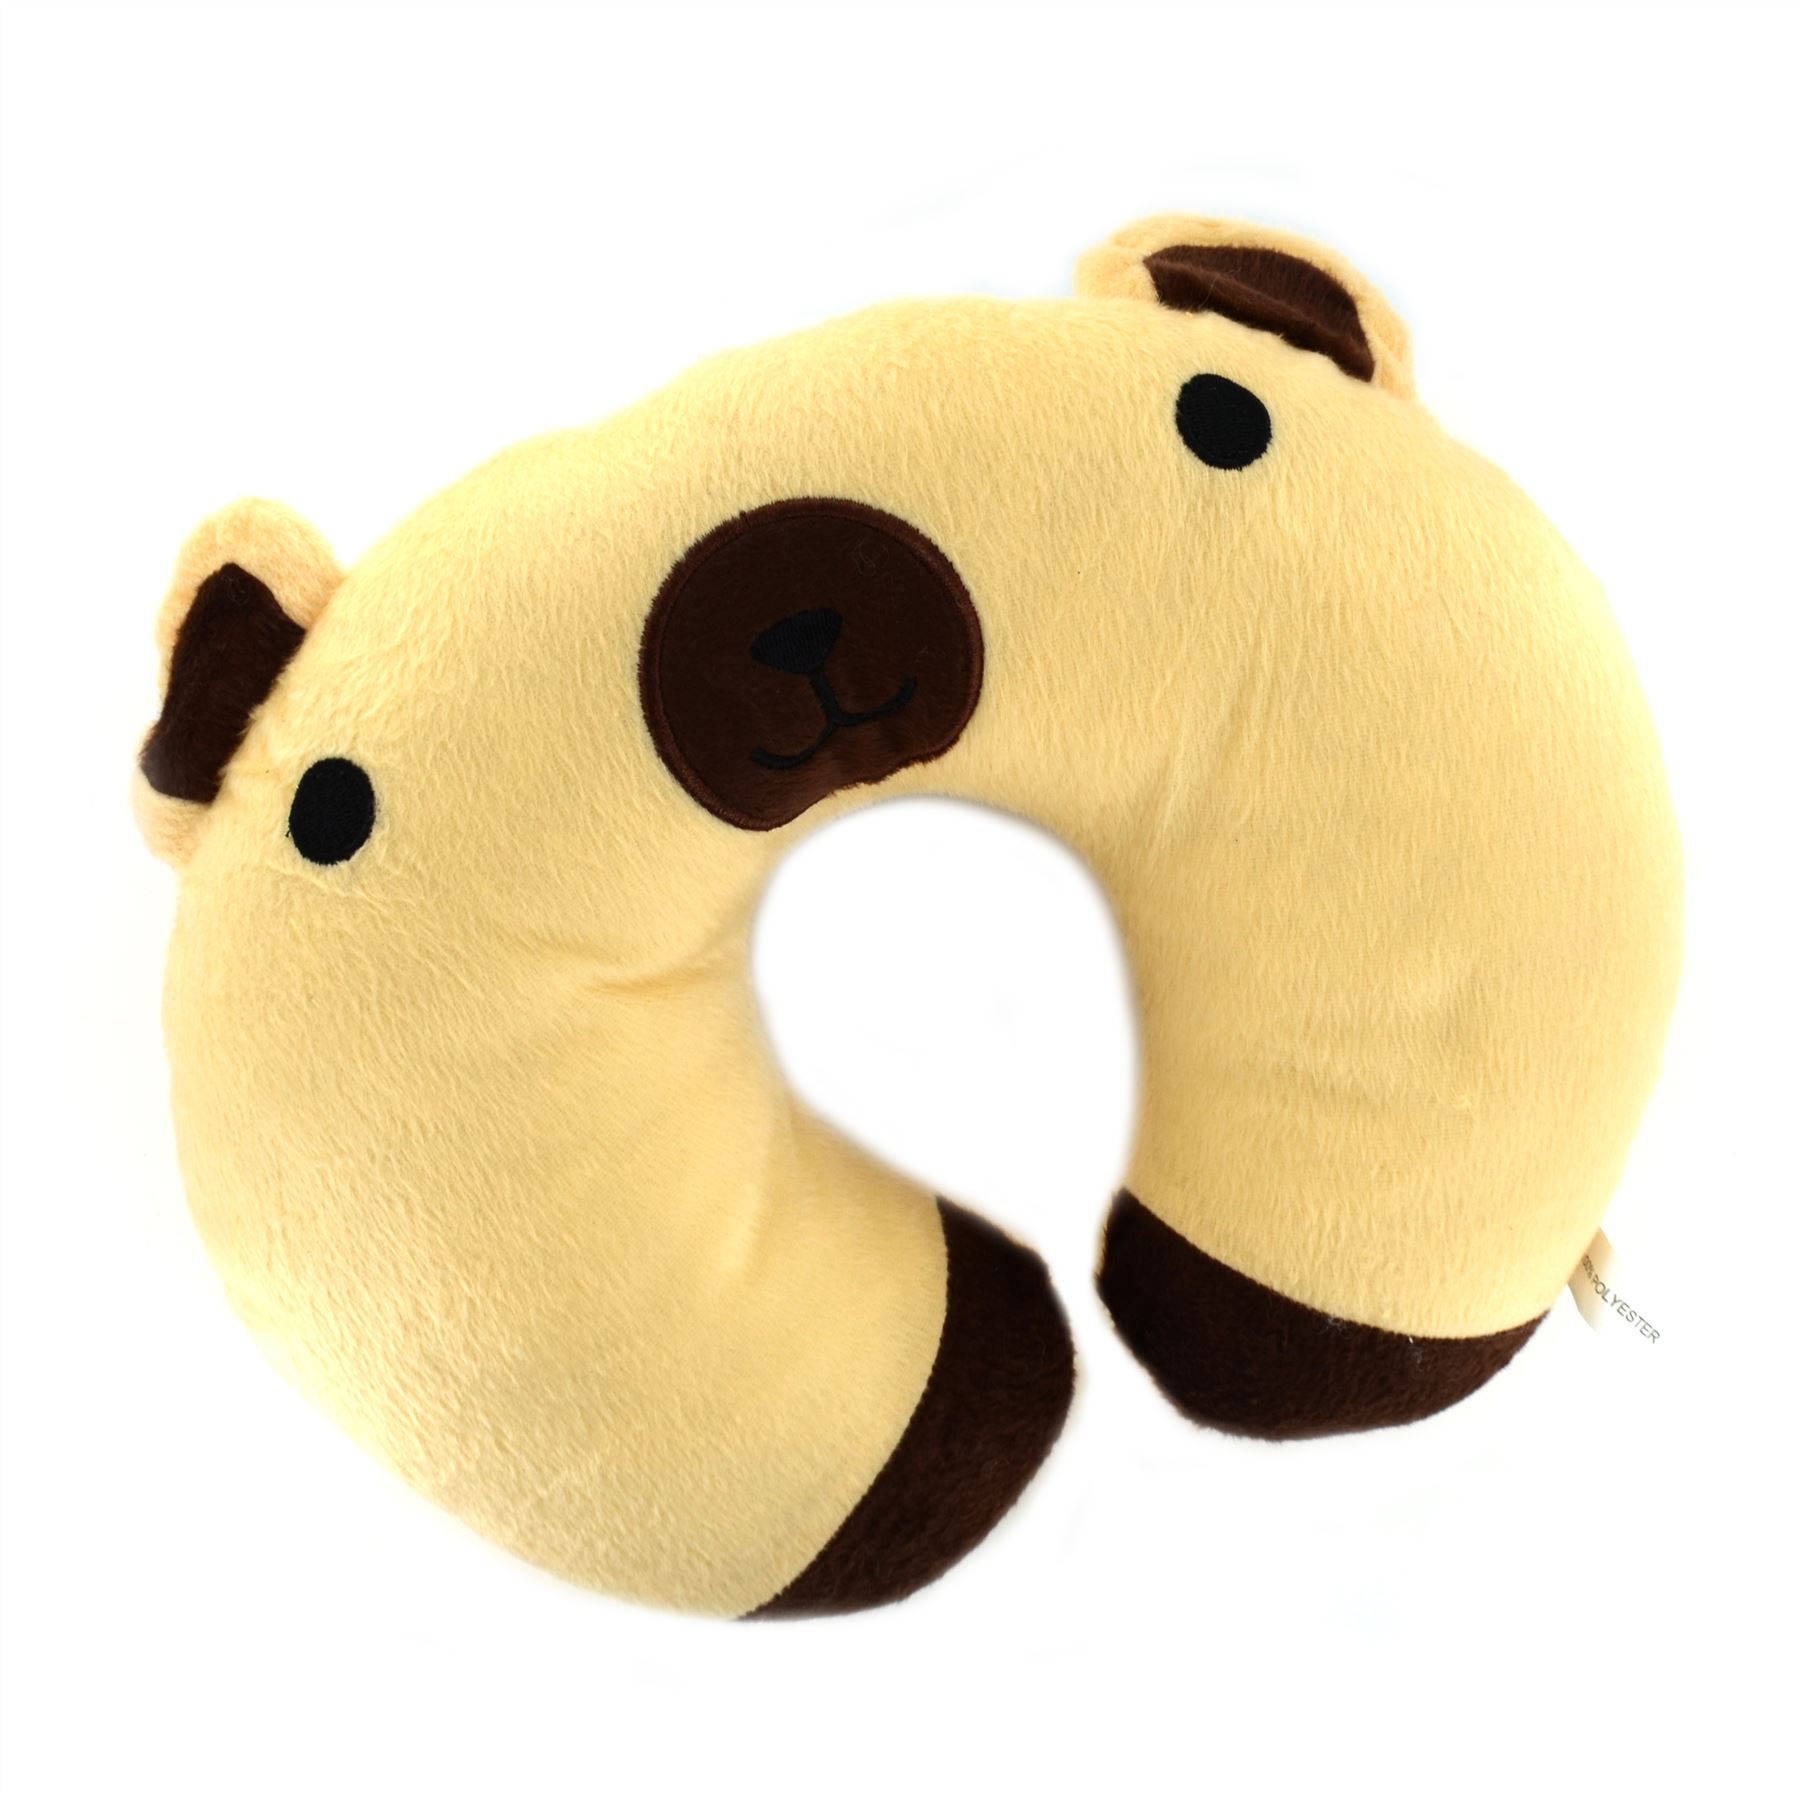 Animal Travel Pillow : Kids Animal Neck Pillow Super Soft Travel Sleep Support Plush Cushion Car Home eBay